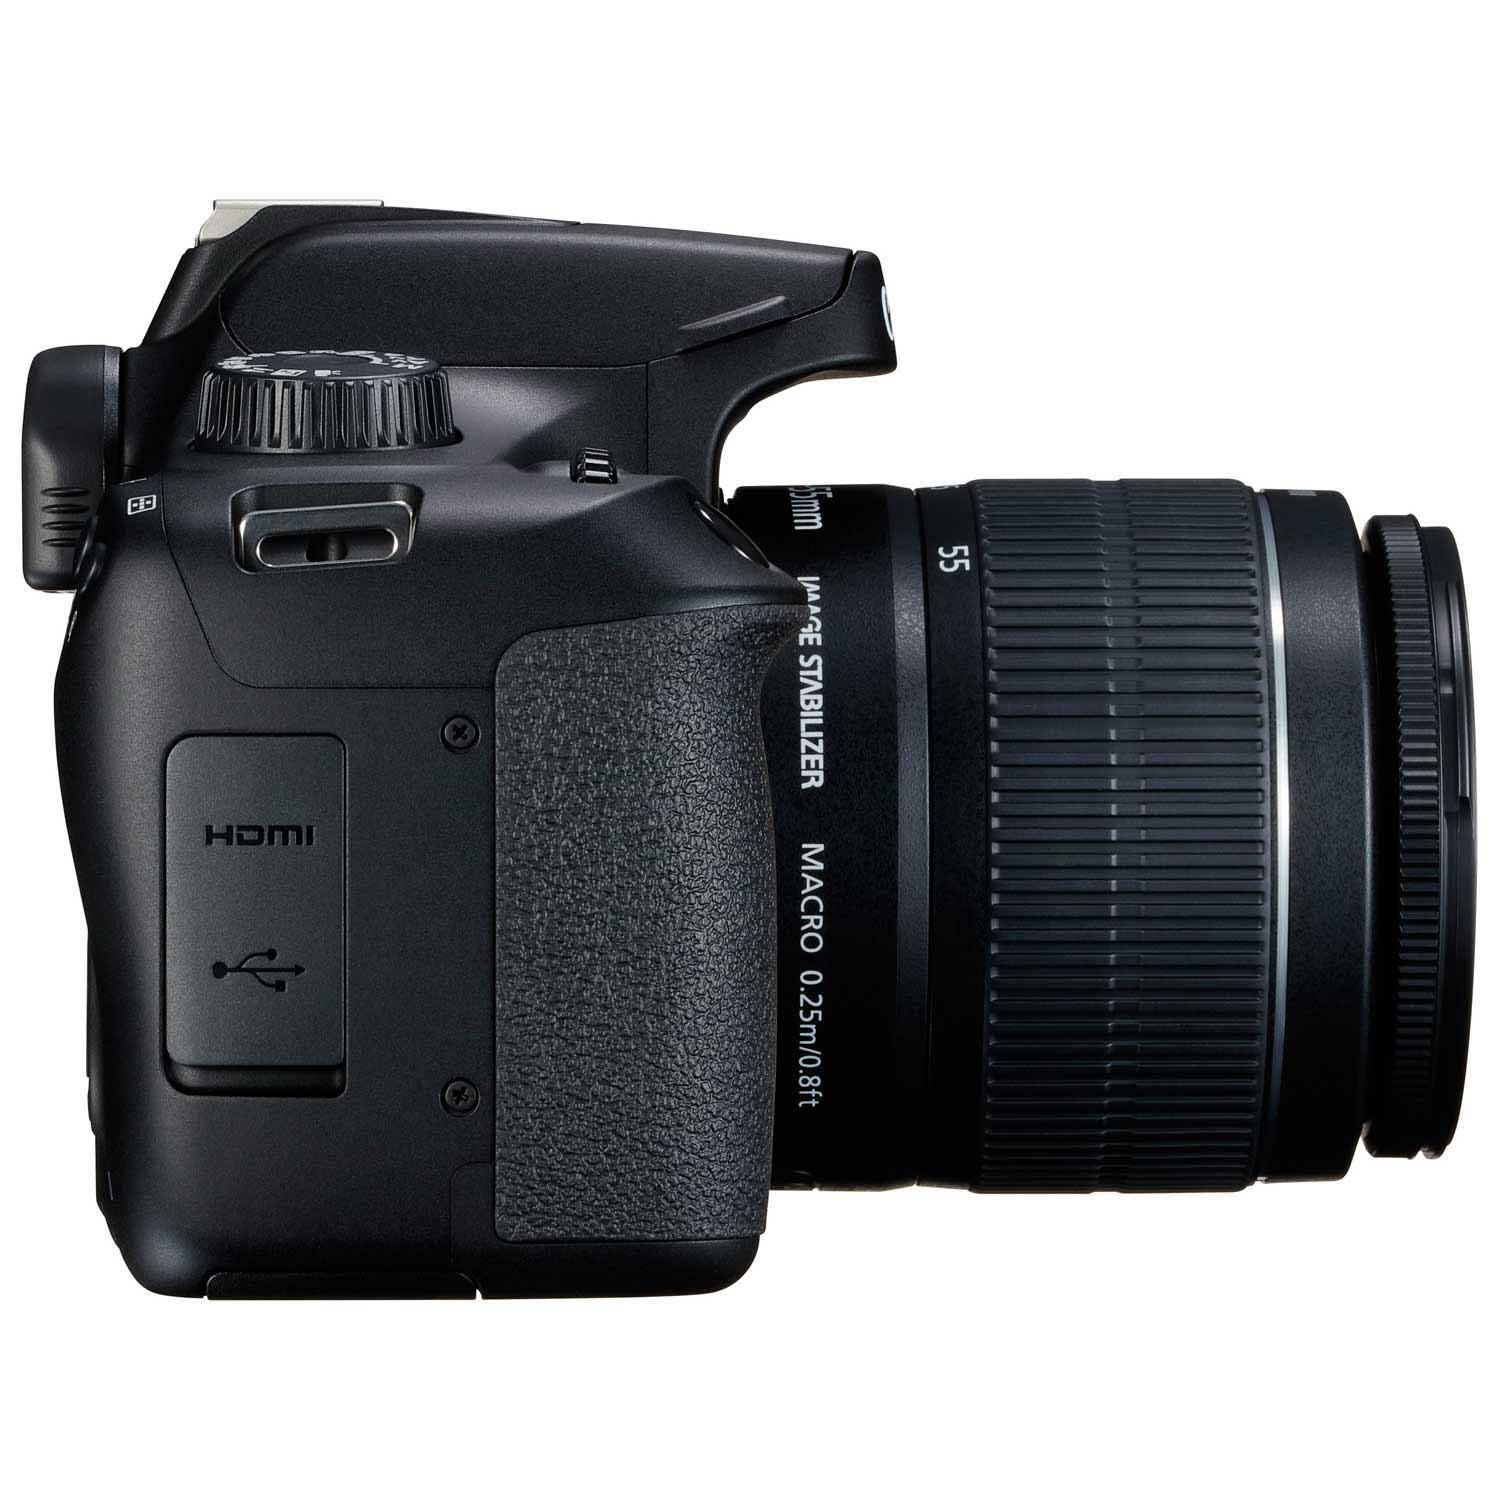 CAMERA CANON  T100  KIT 18-55 DC III BR